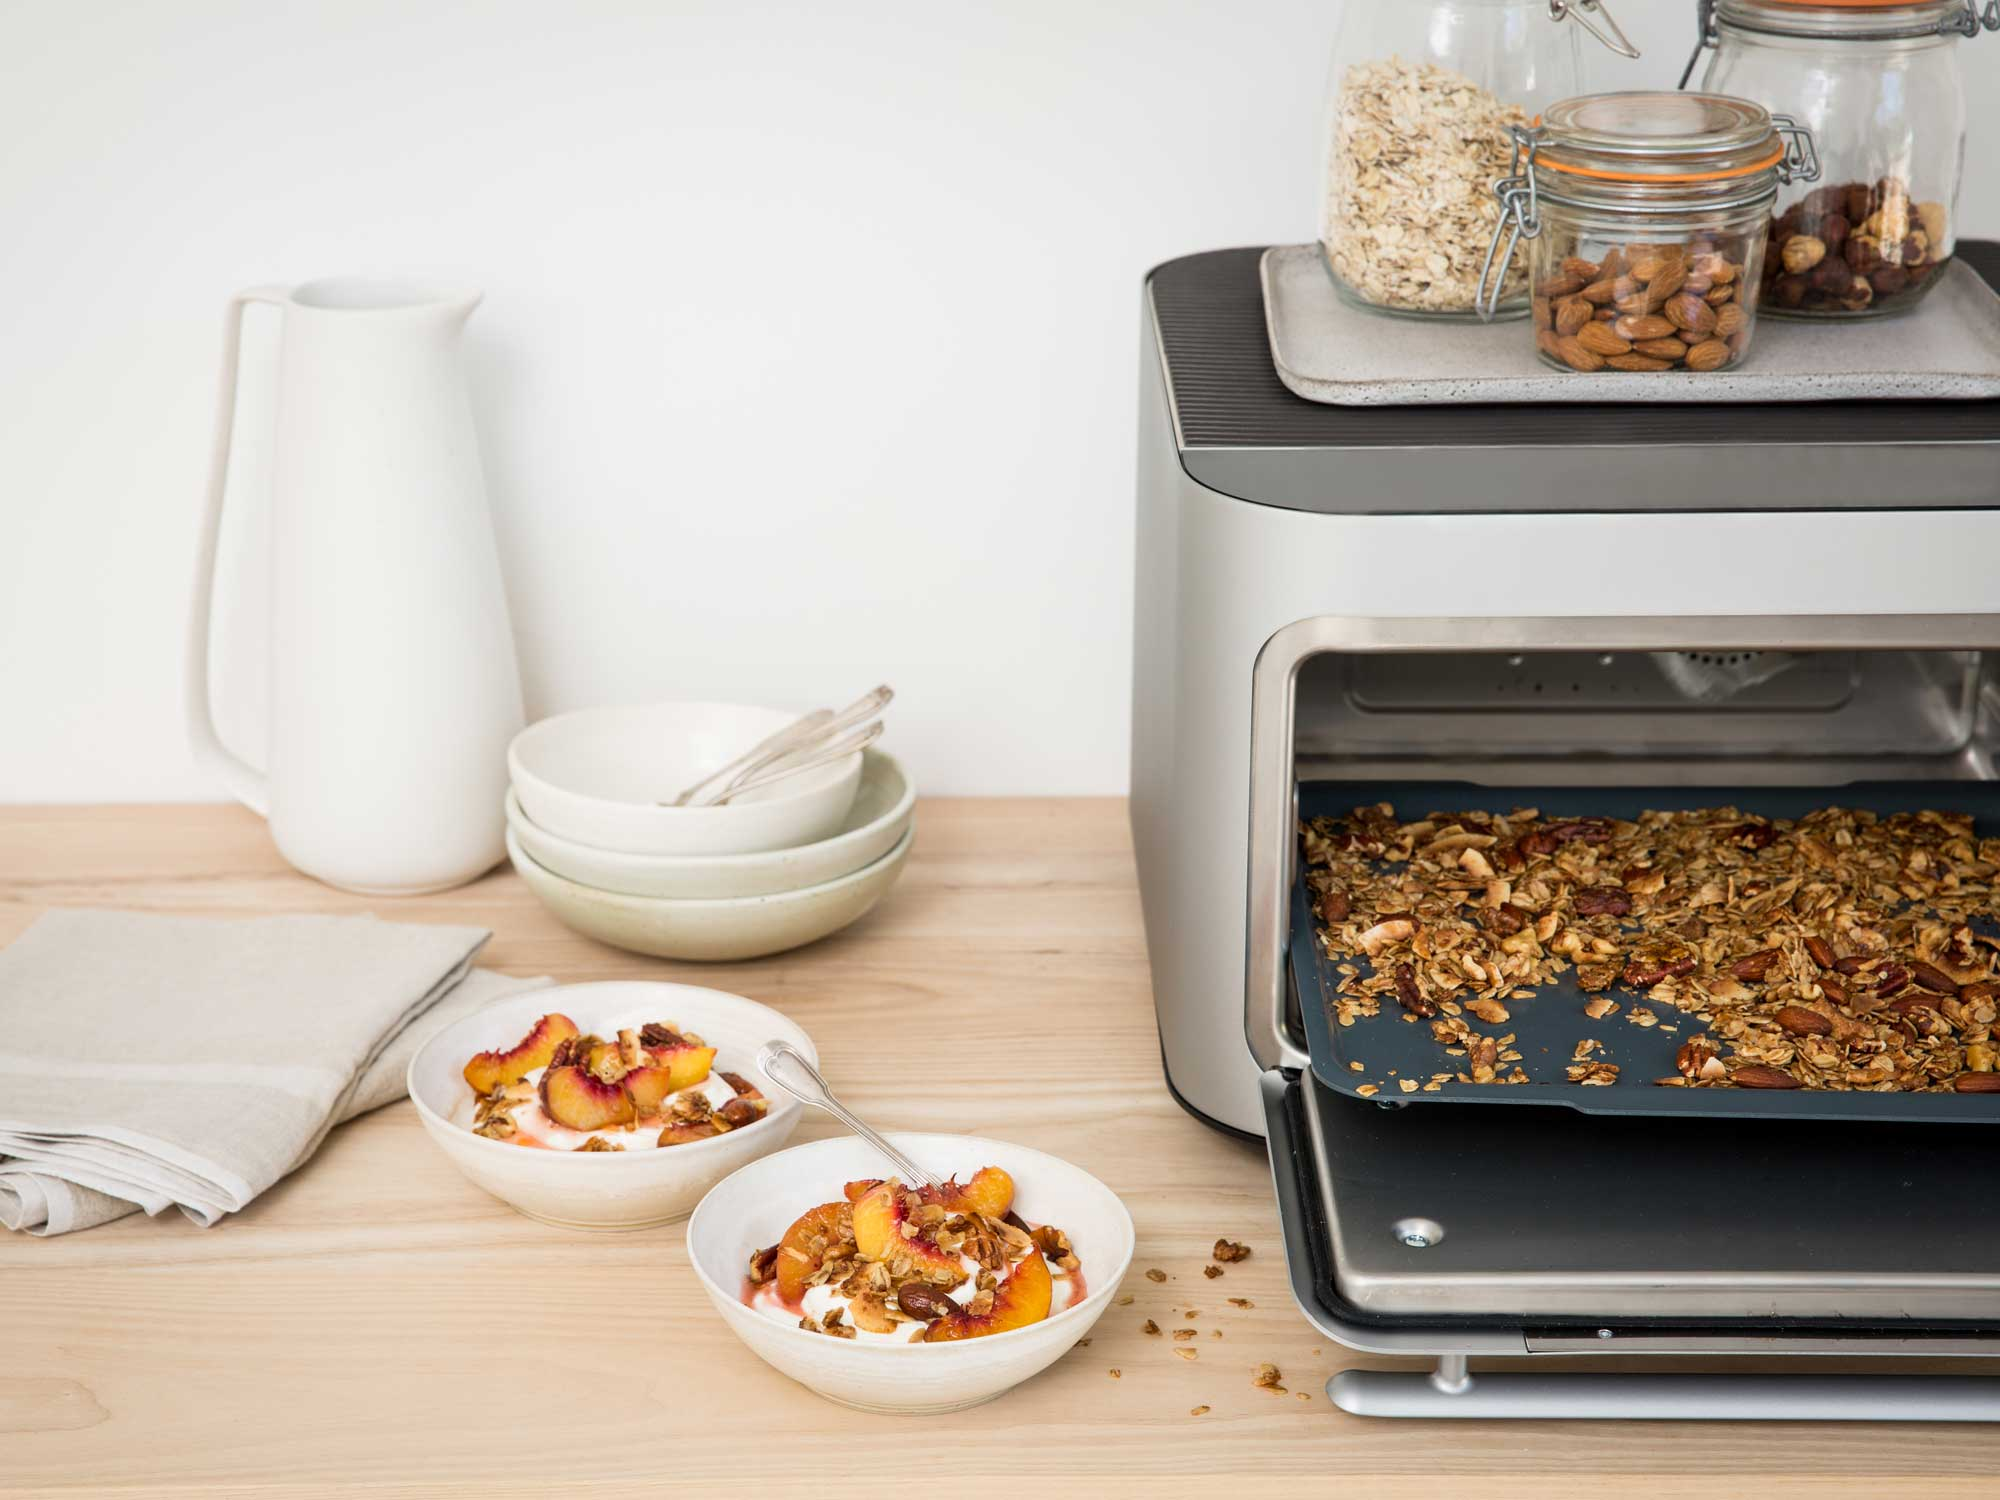 Brava oven with toasted grains inside